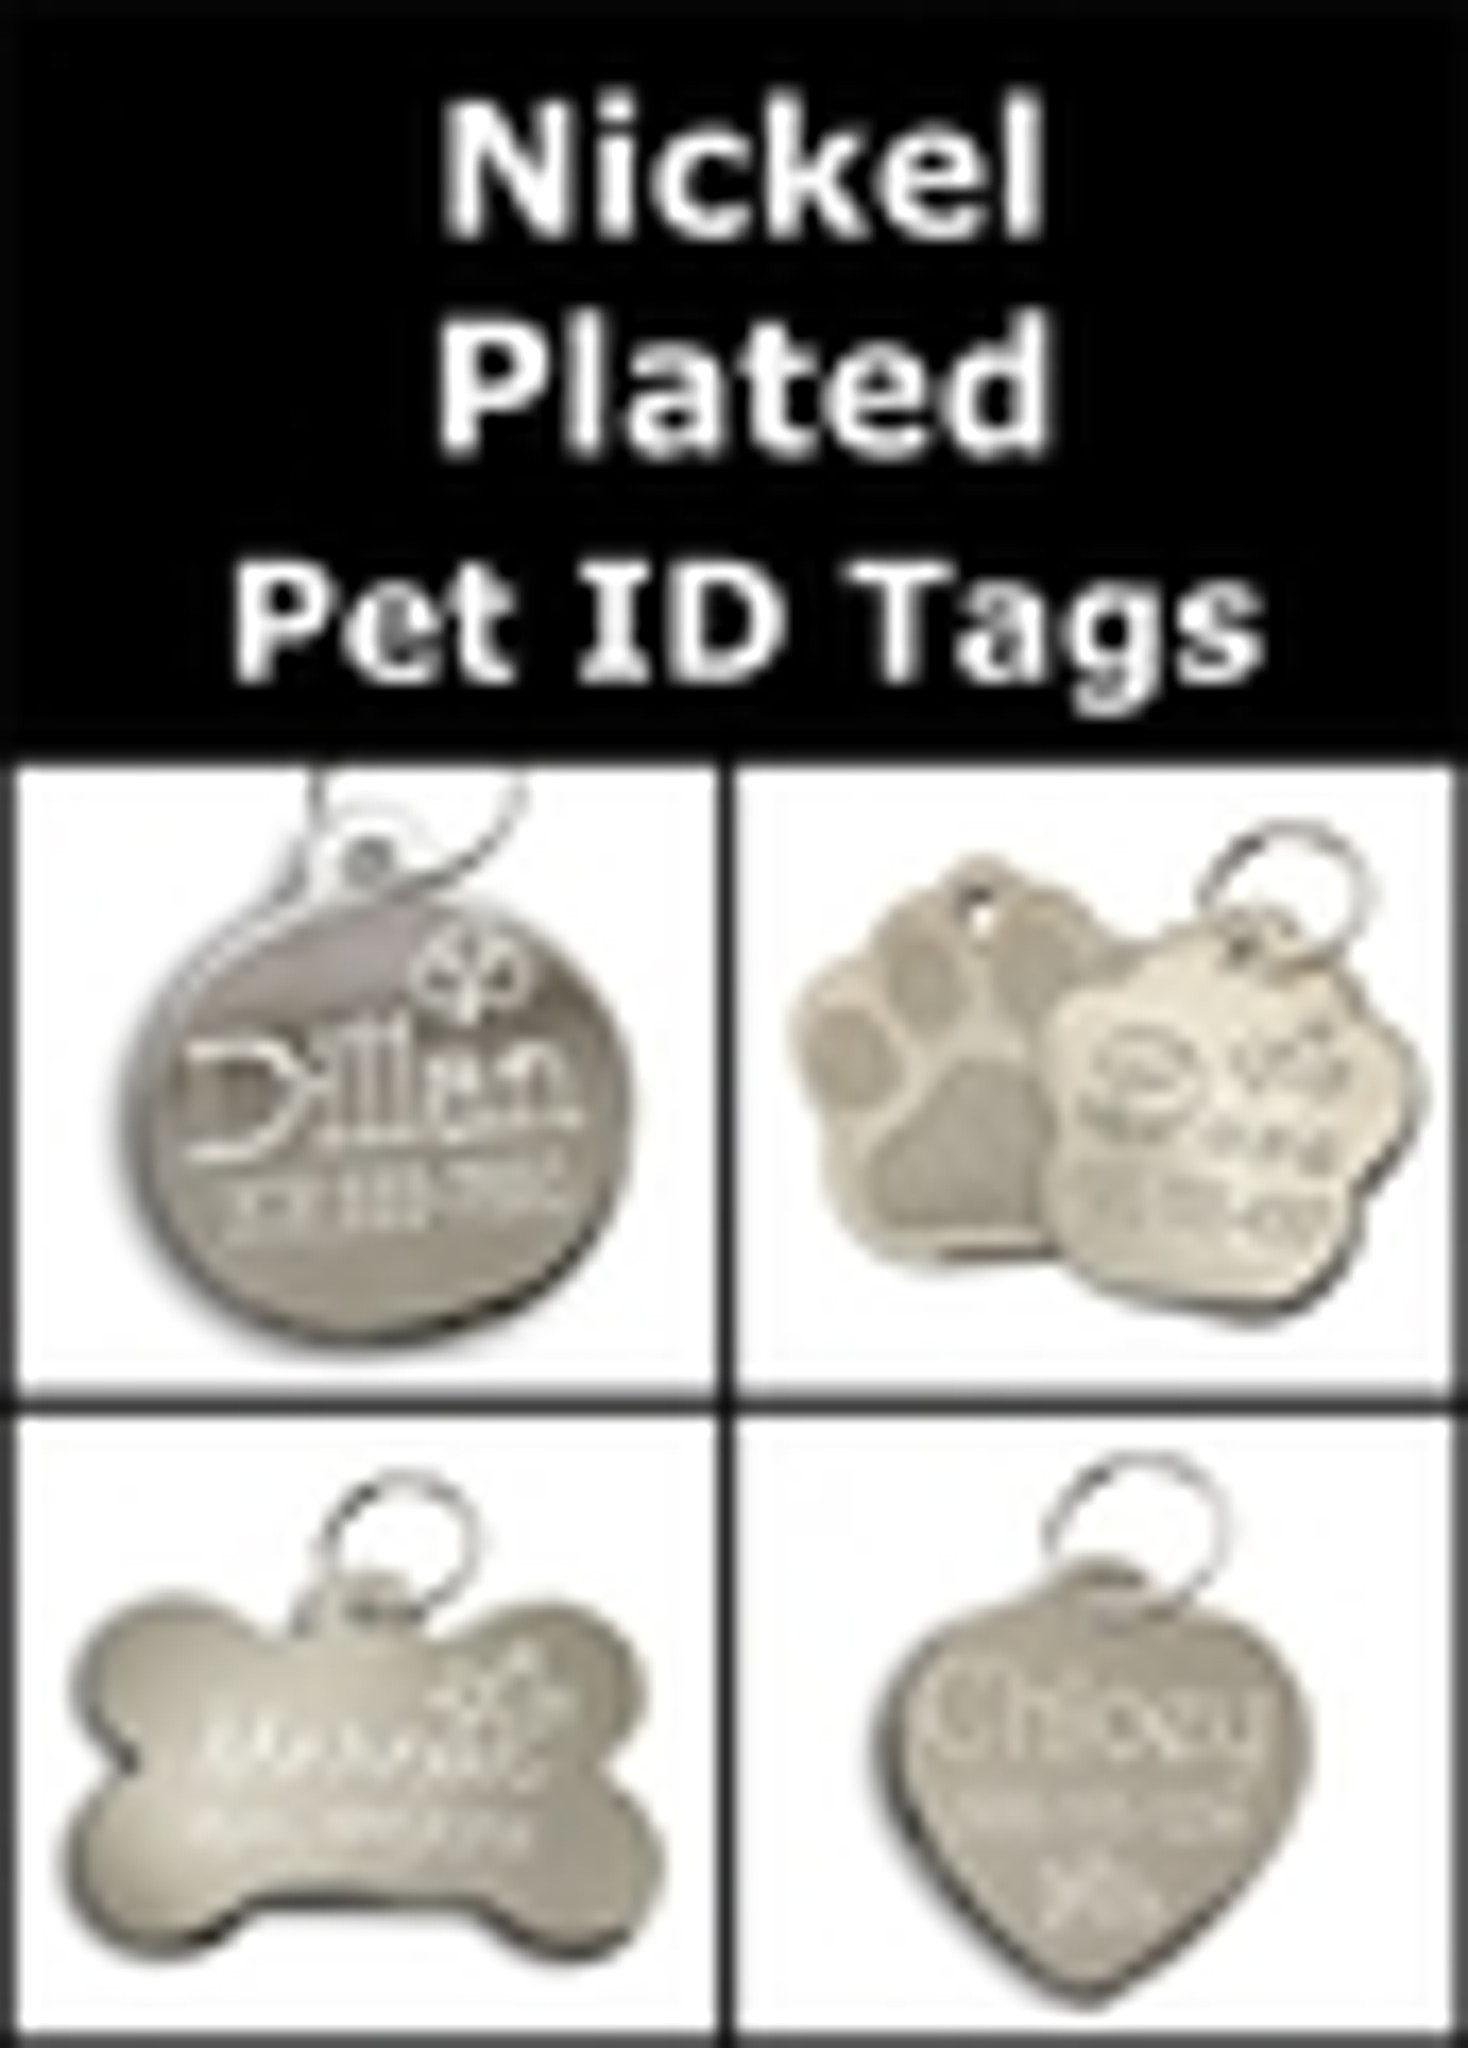 Silver Plated Nickel / Chrome Pet ID Tags